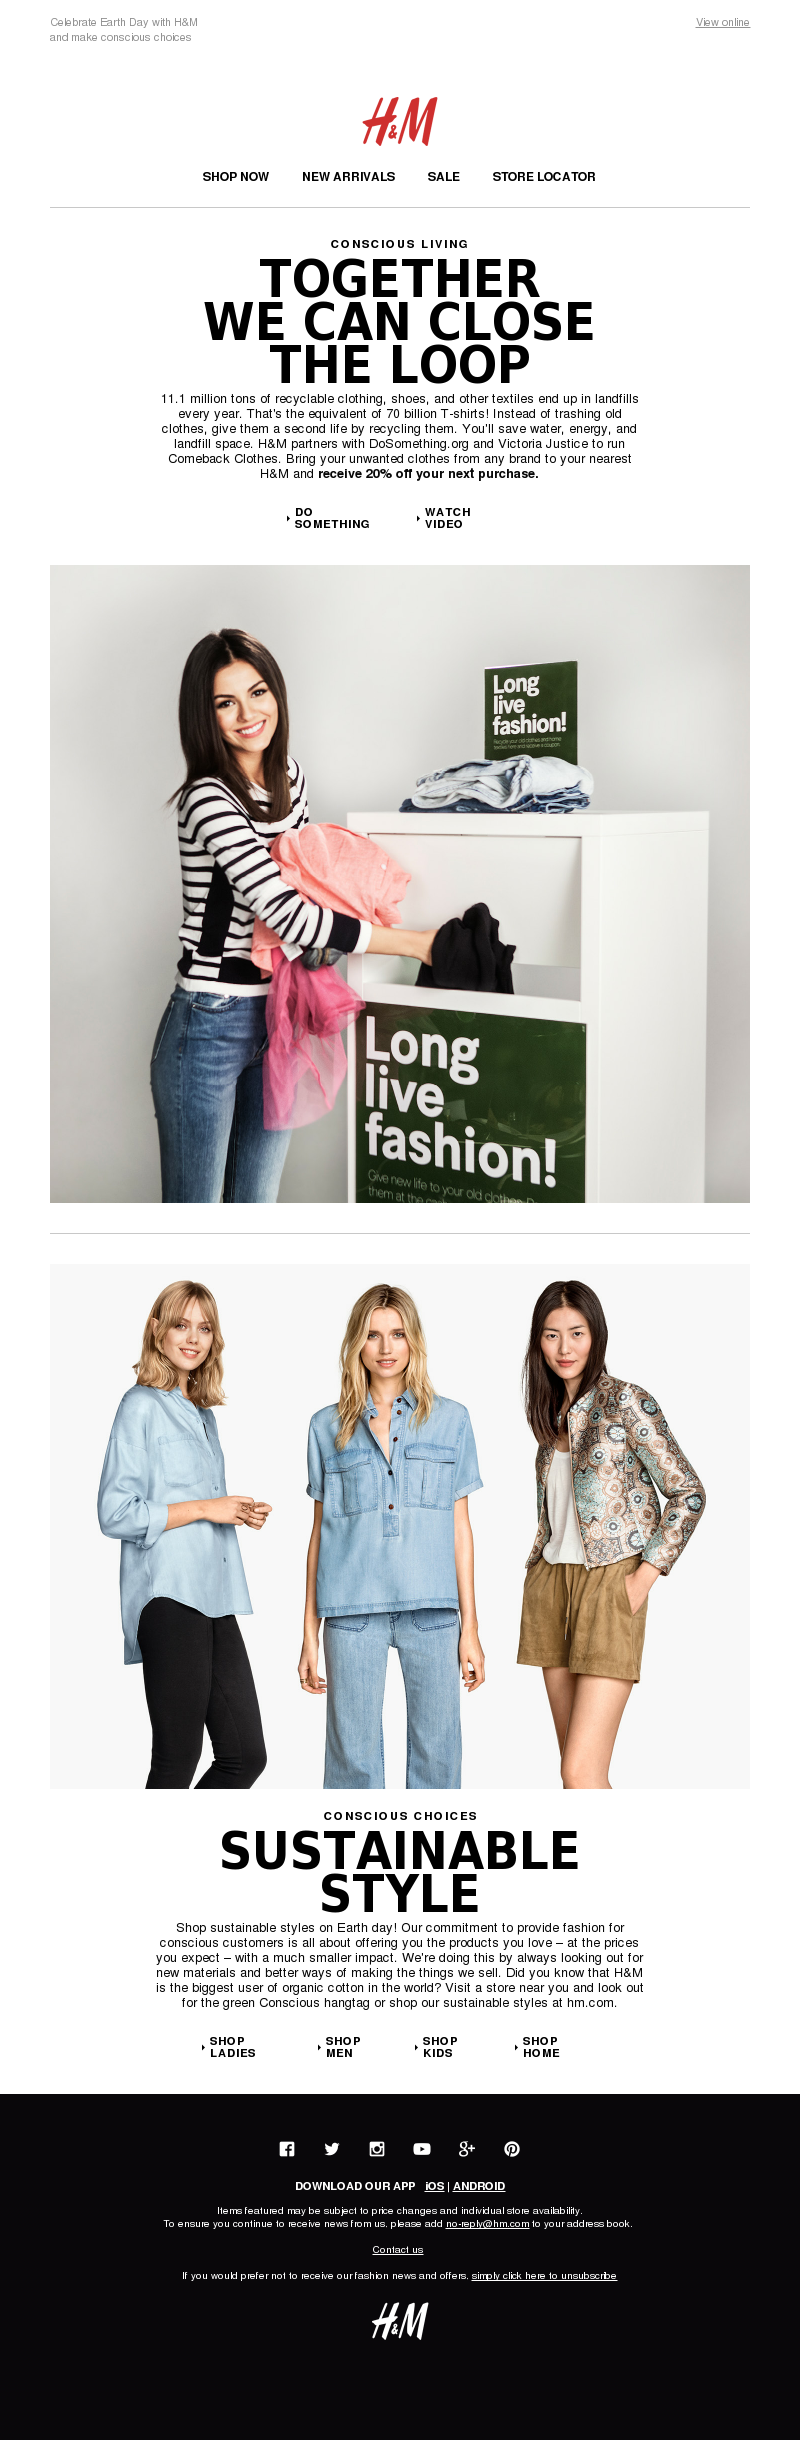 Celebrate Earth Day with H&M and make conscious choices View online SHOP NO